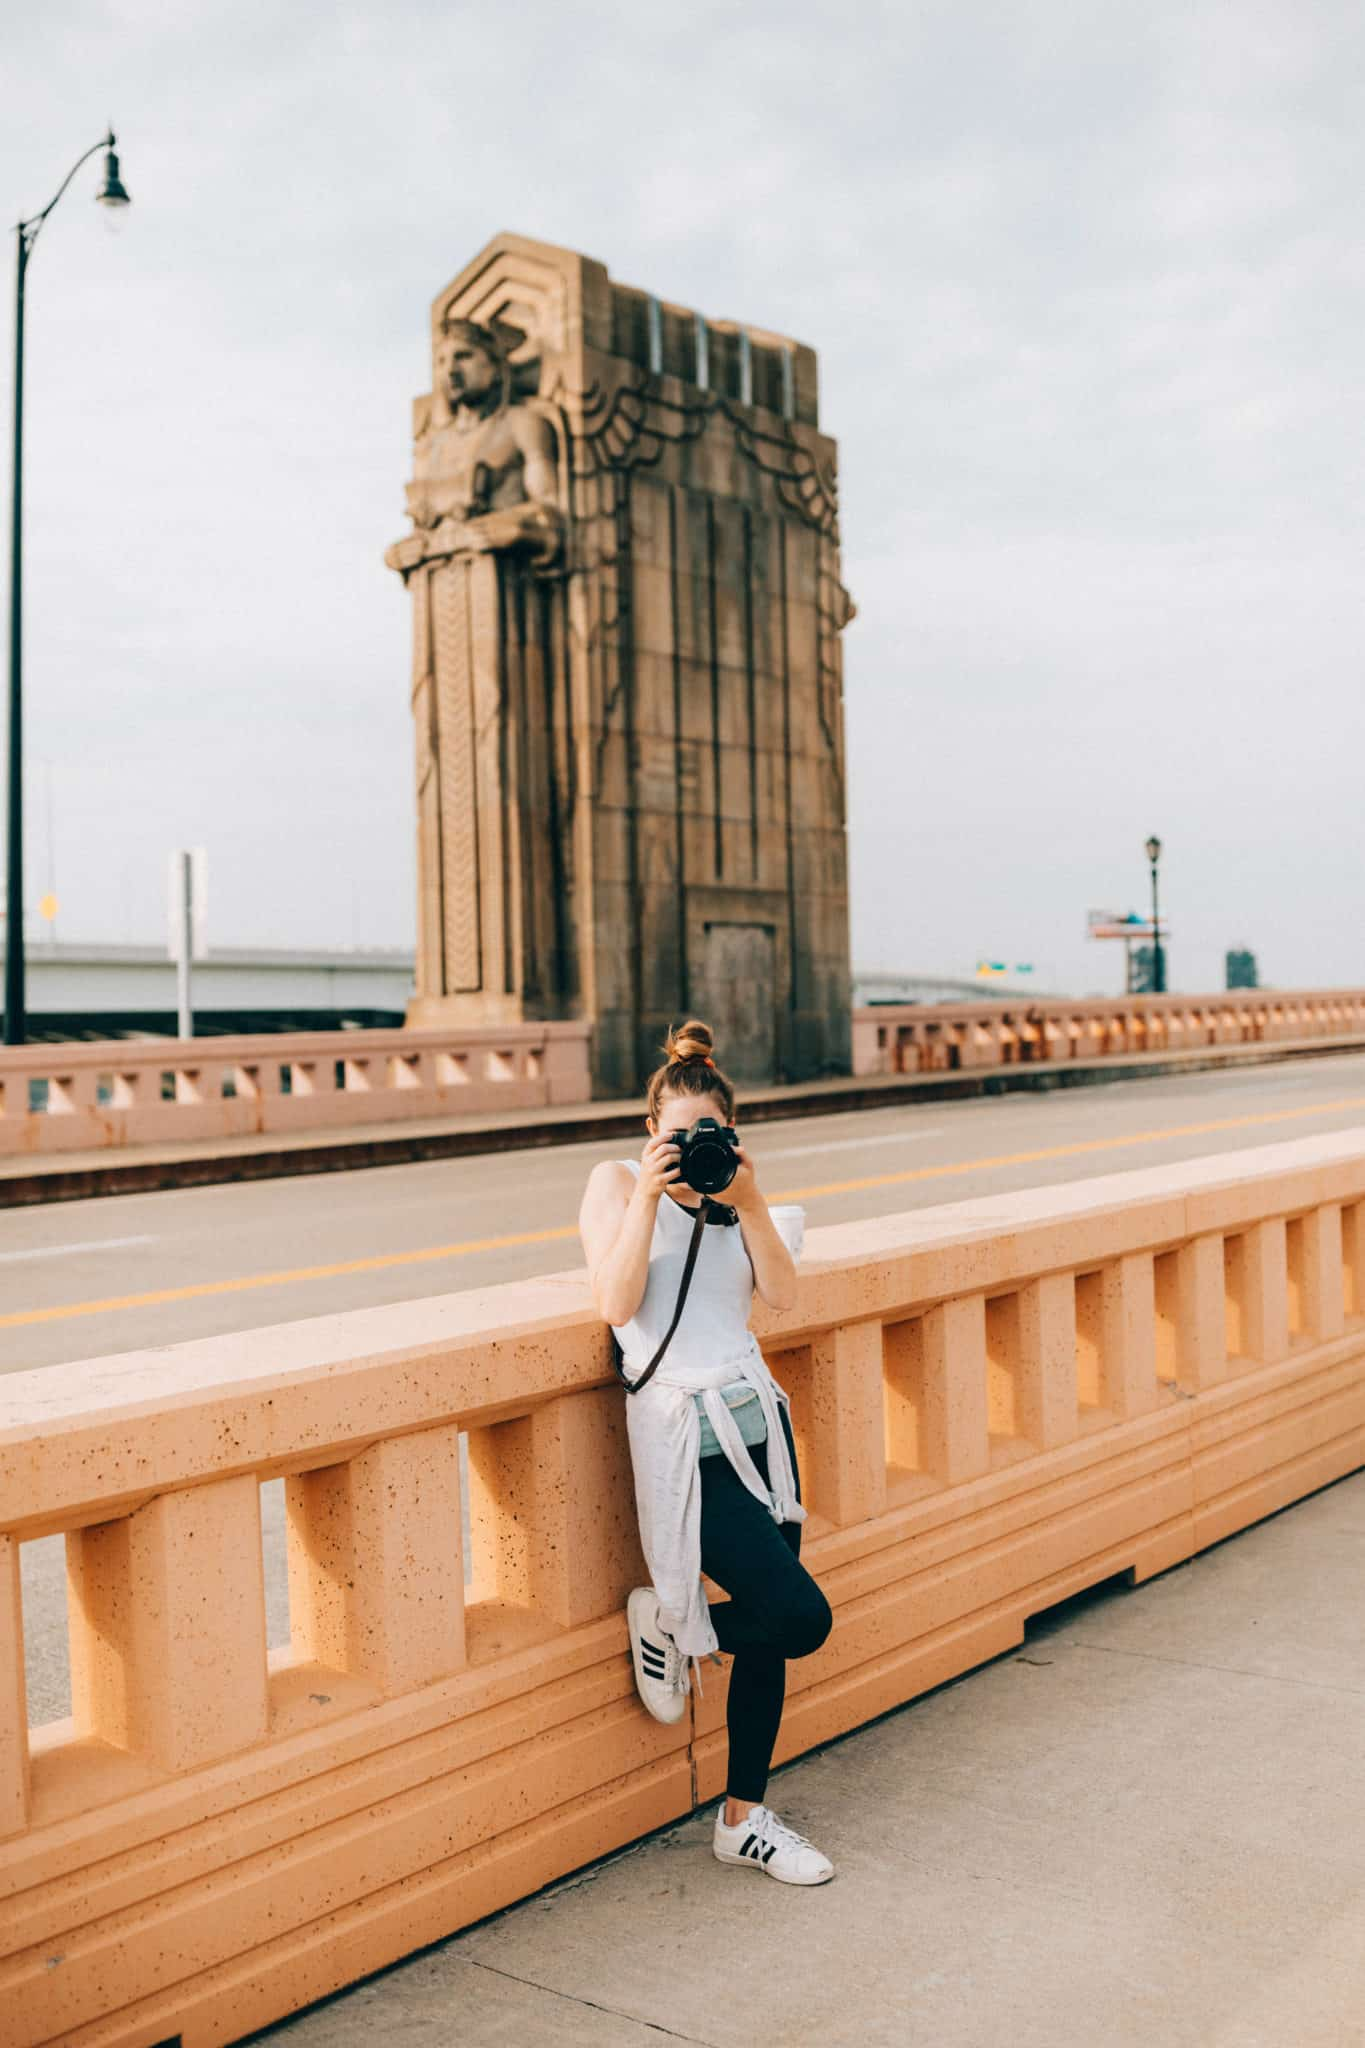 Capture the best photography spots in Cleveland with this complete list! We're sharing the top 20 best instagram spots in Cleveland, Ohio, where the best views are, and amazing photo ops in the city. #Ohio #Cleveland #instagram #photography #downtown #bestviews #travel #summer #rustbelt #photo #explore